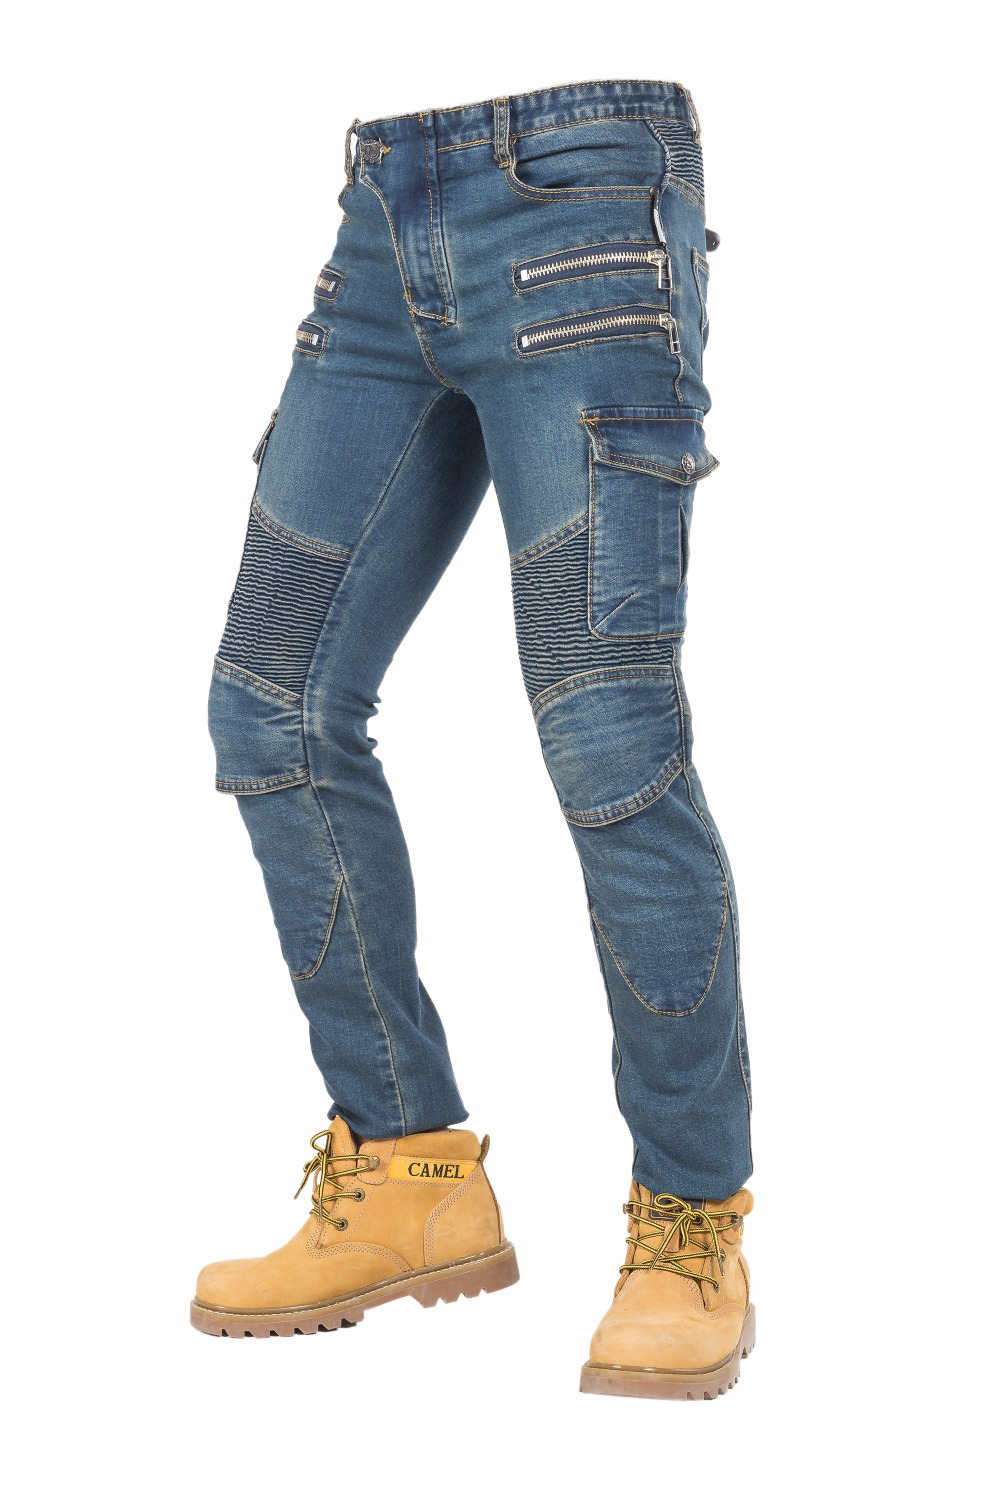 Rock biker motorcycle locomotive racing knight straight jeans jumper pants off the road motorcycle racing riding straight pants rock biker shop genuine 2017 new slim camouflage riding jeans motorcycle jeans multifunction denim shorts pants unisex